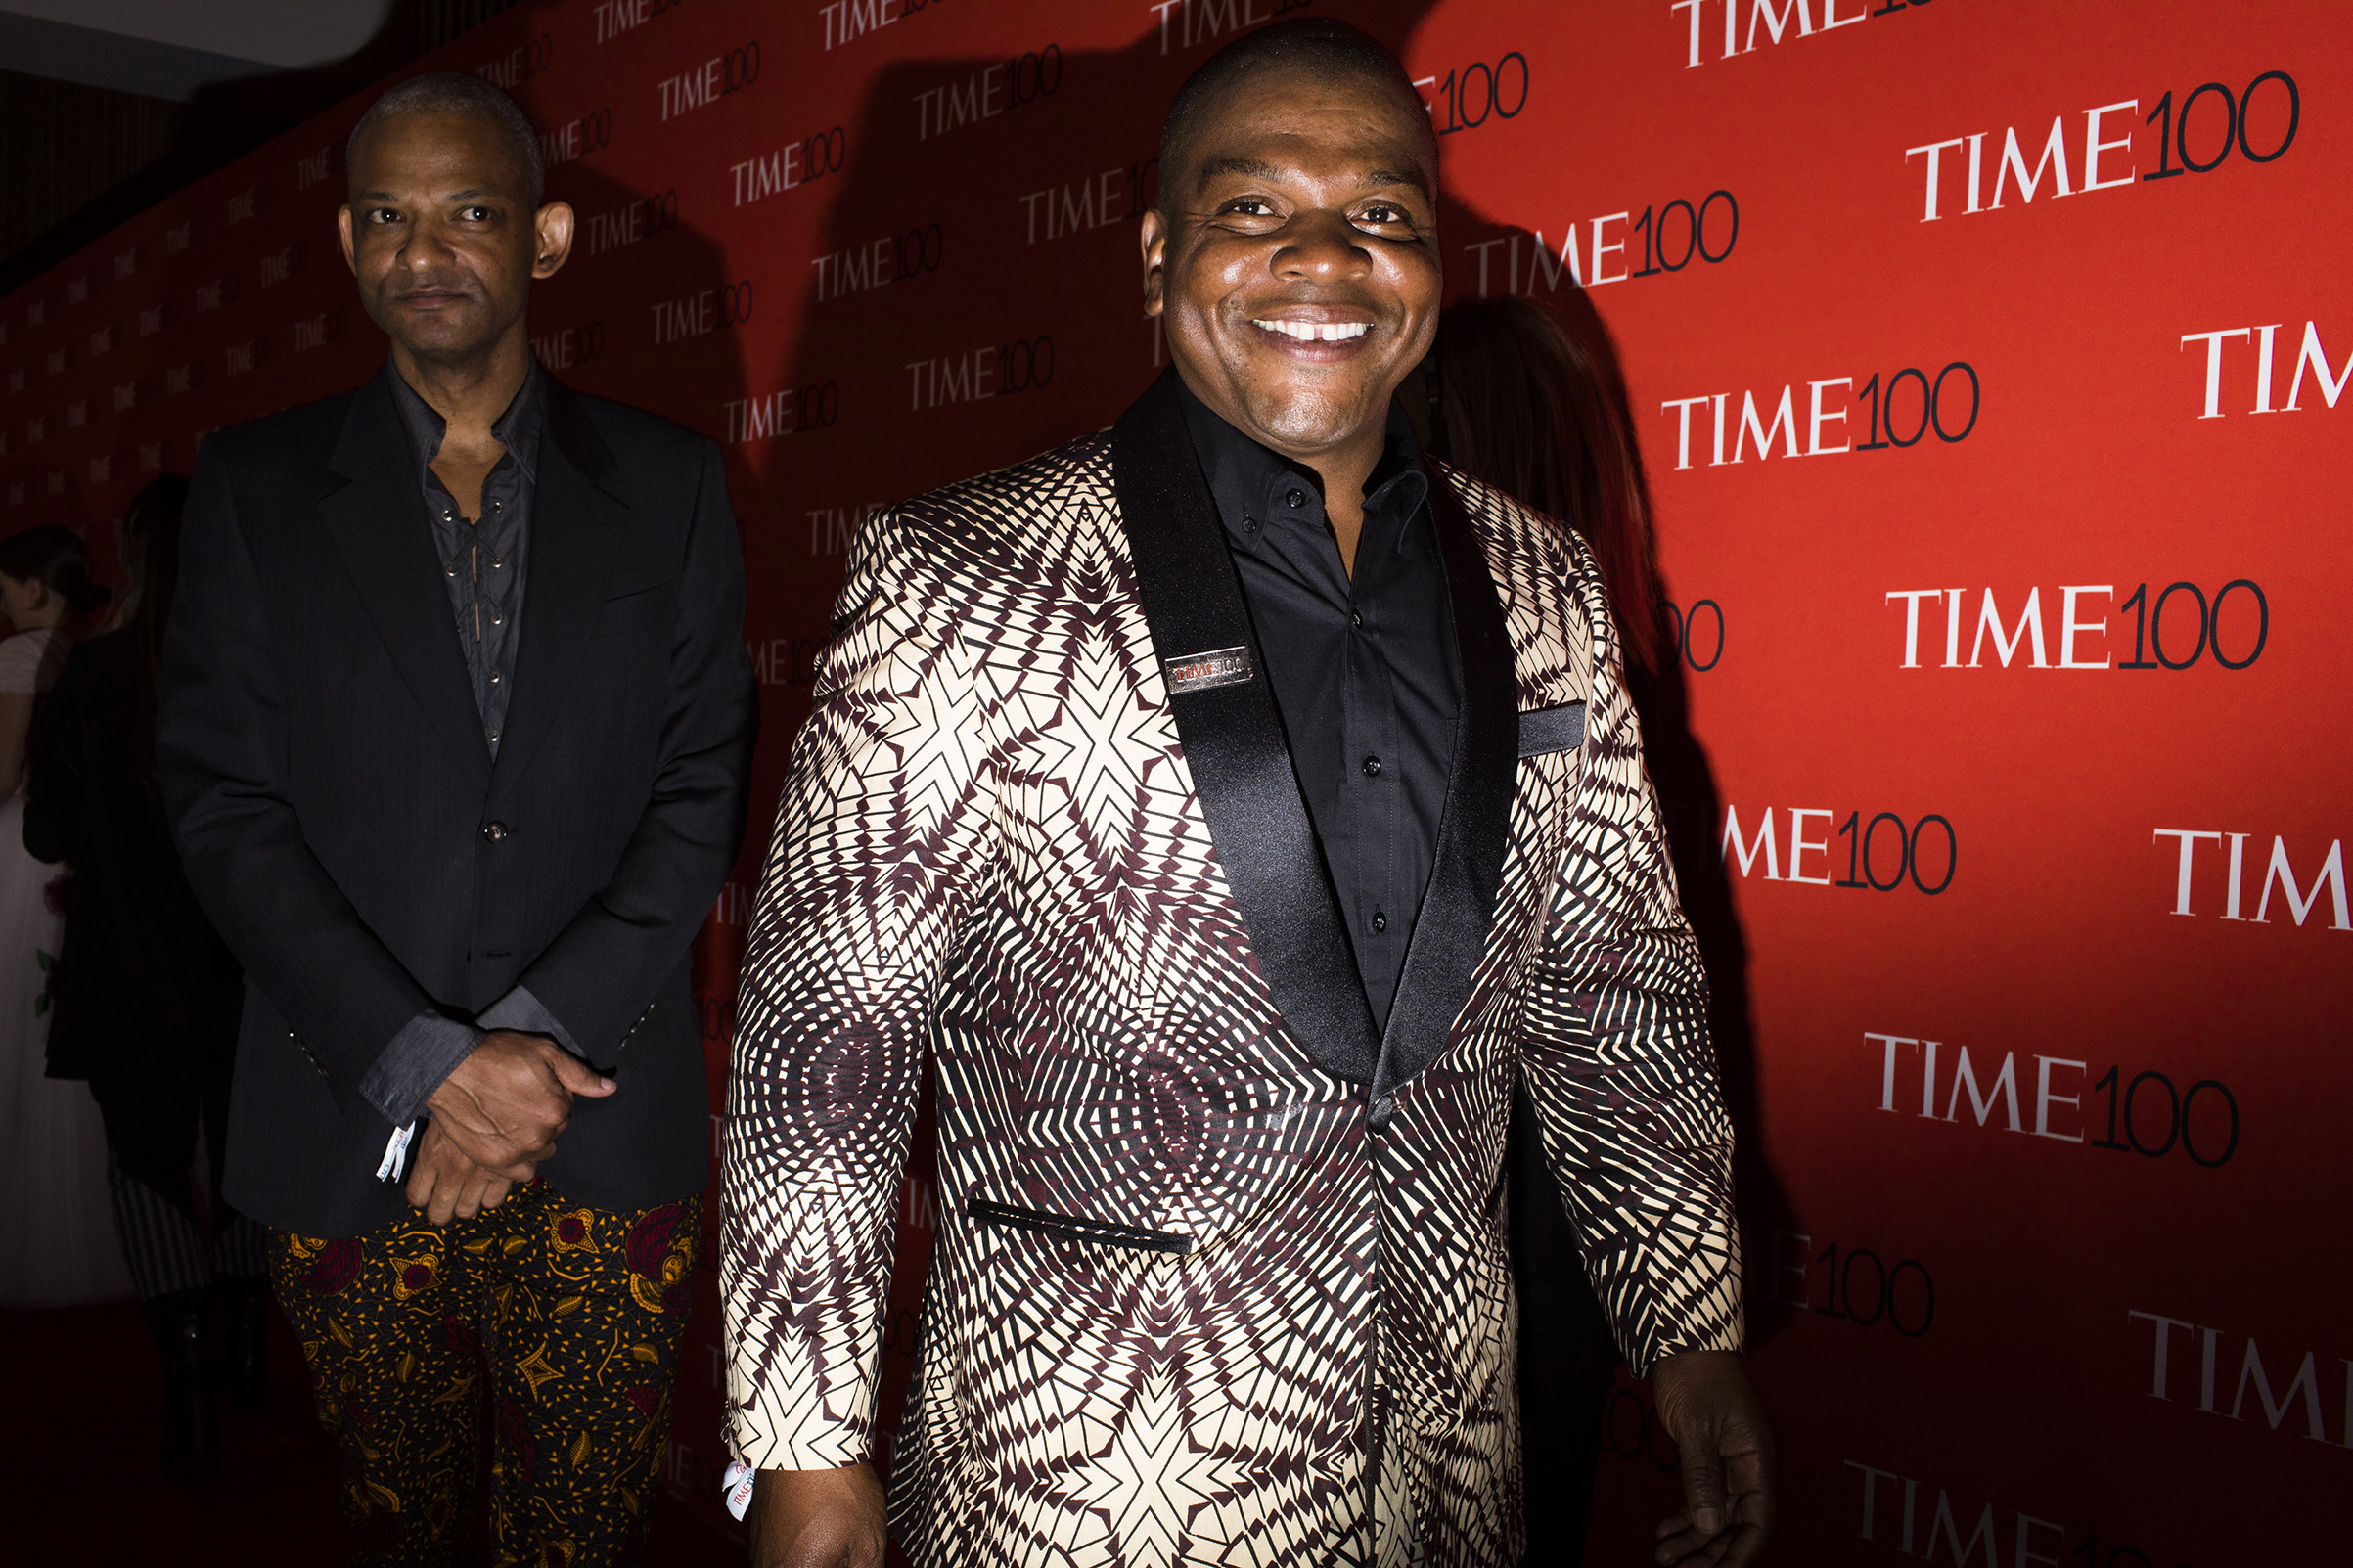 Portrait painter Kehinde Wiley at the Time 100 Gala at Jazz at Lincoln Center on April 24, 2018 in New York City.